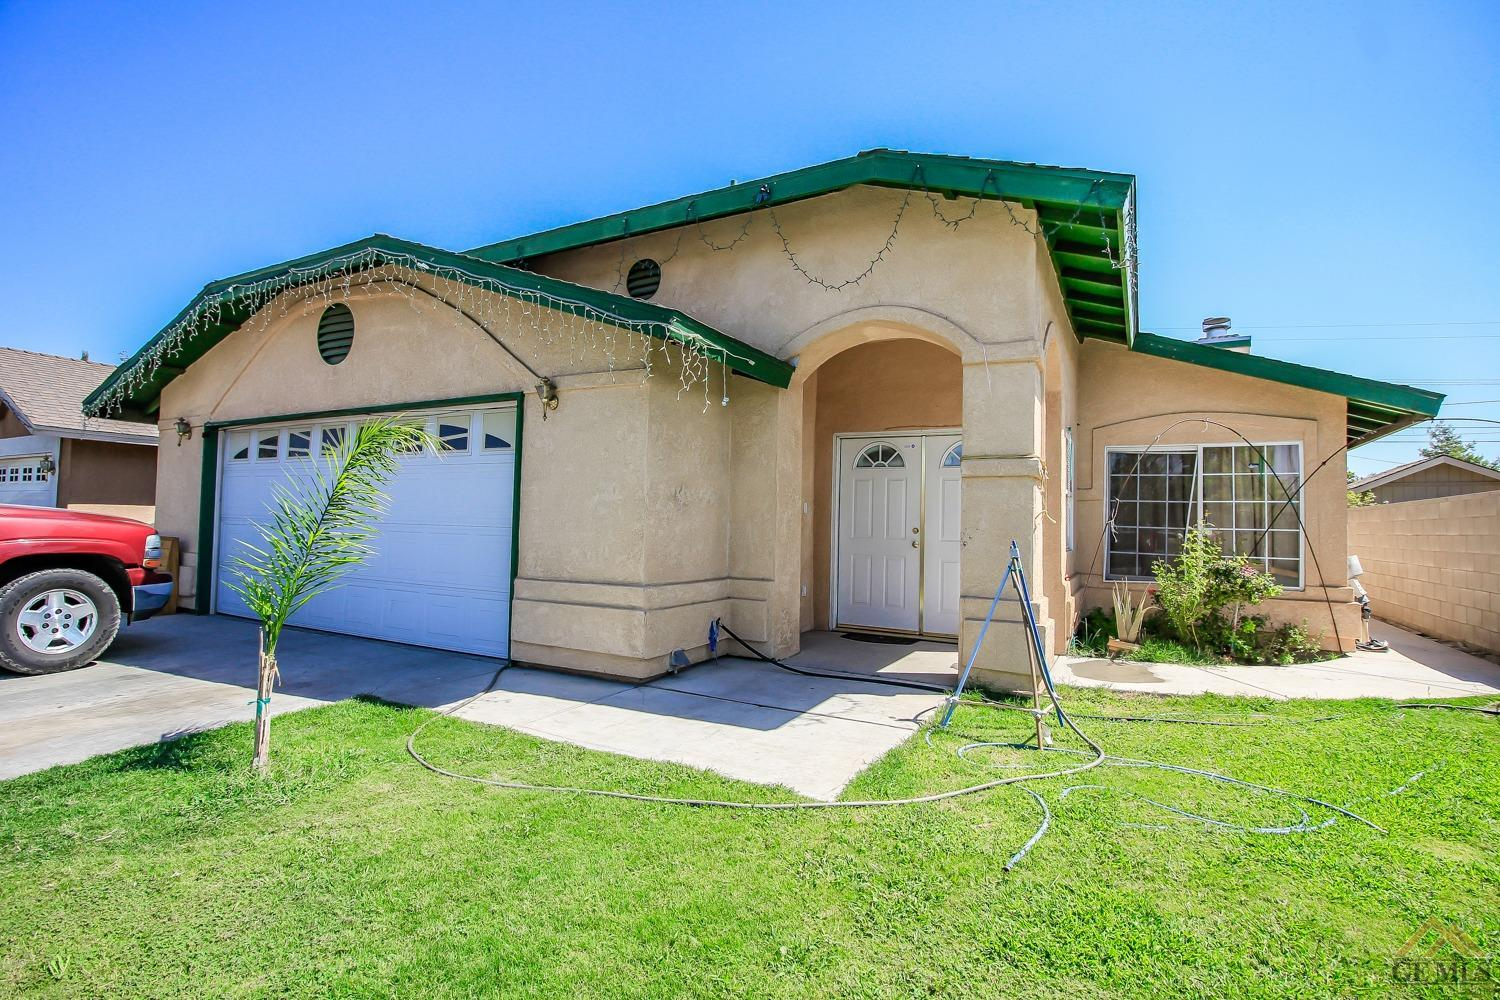 311 Tyree Toliver St, Bakersfield, CA 93307